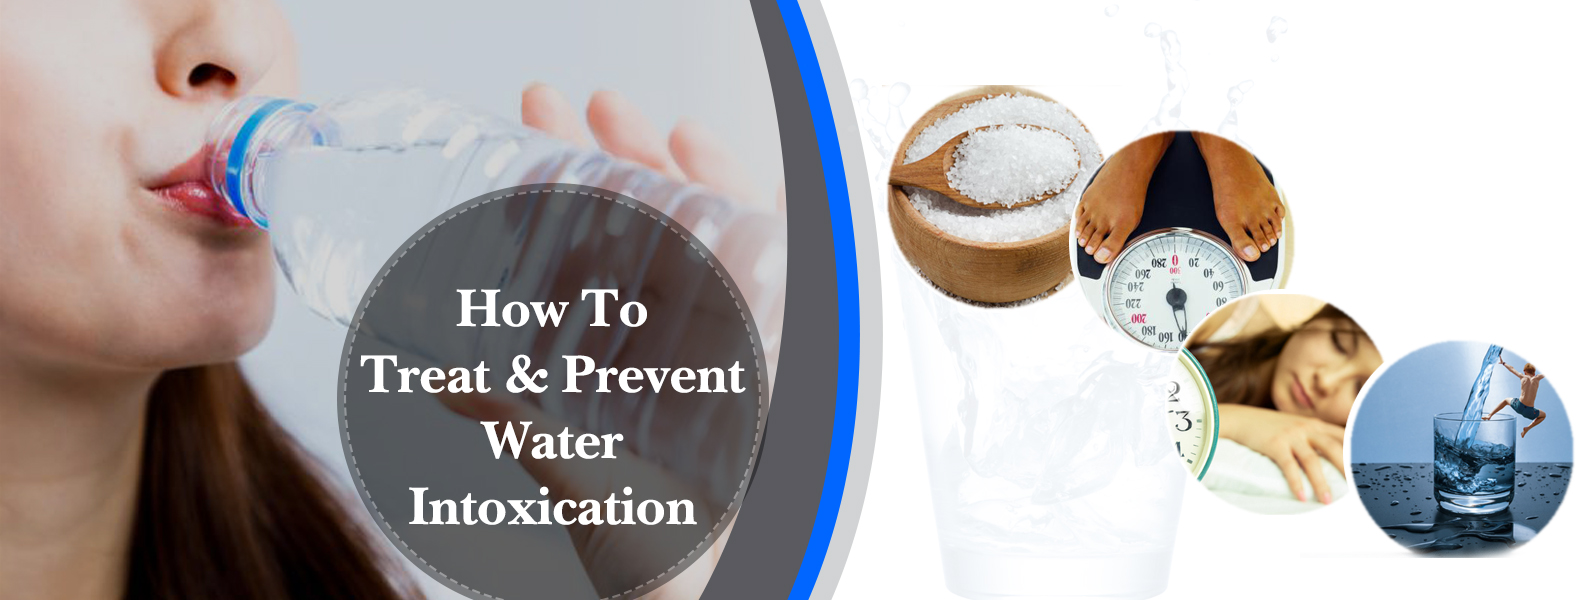 10 Dangers Of Drinking Too Much Water – How To Treat And Prevent Water Intoxication